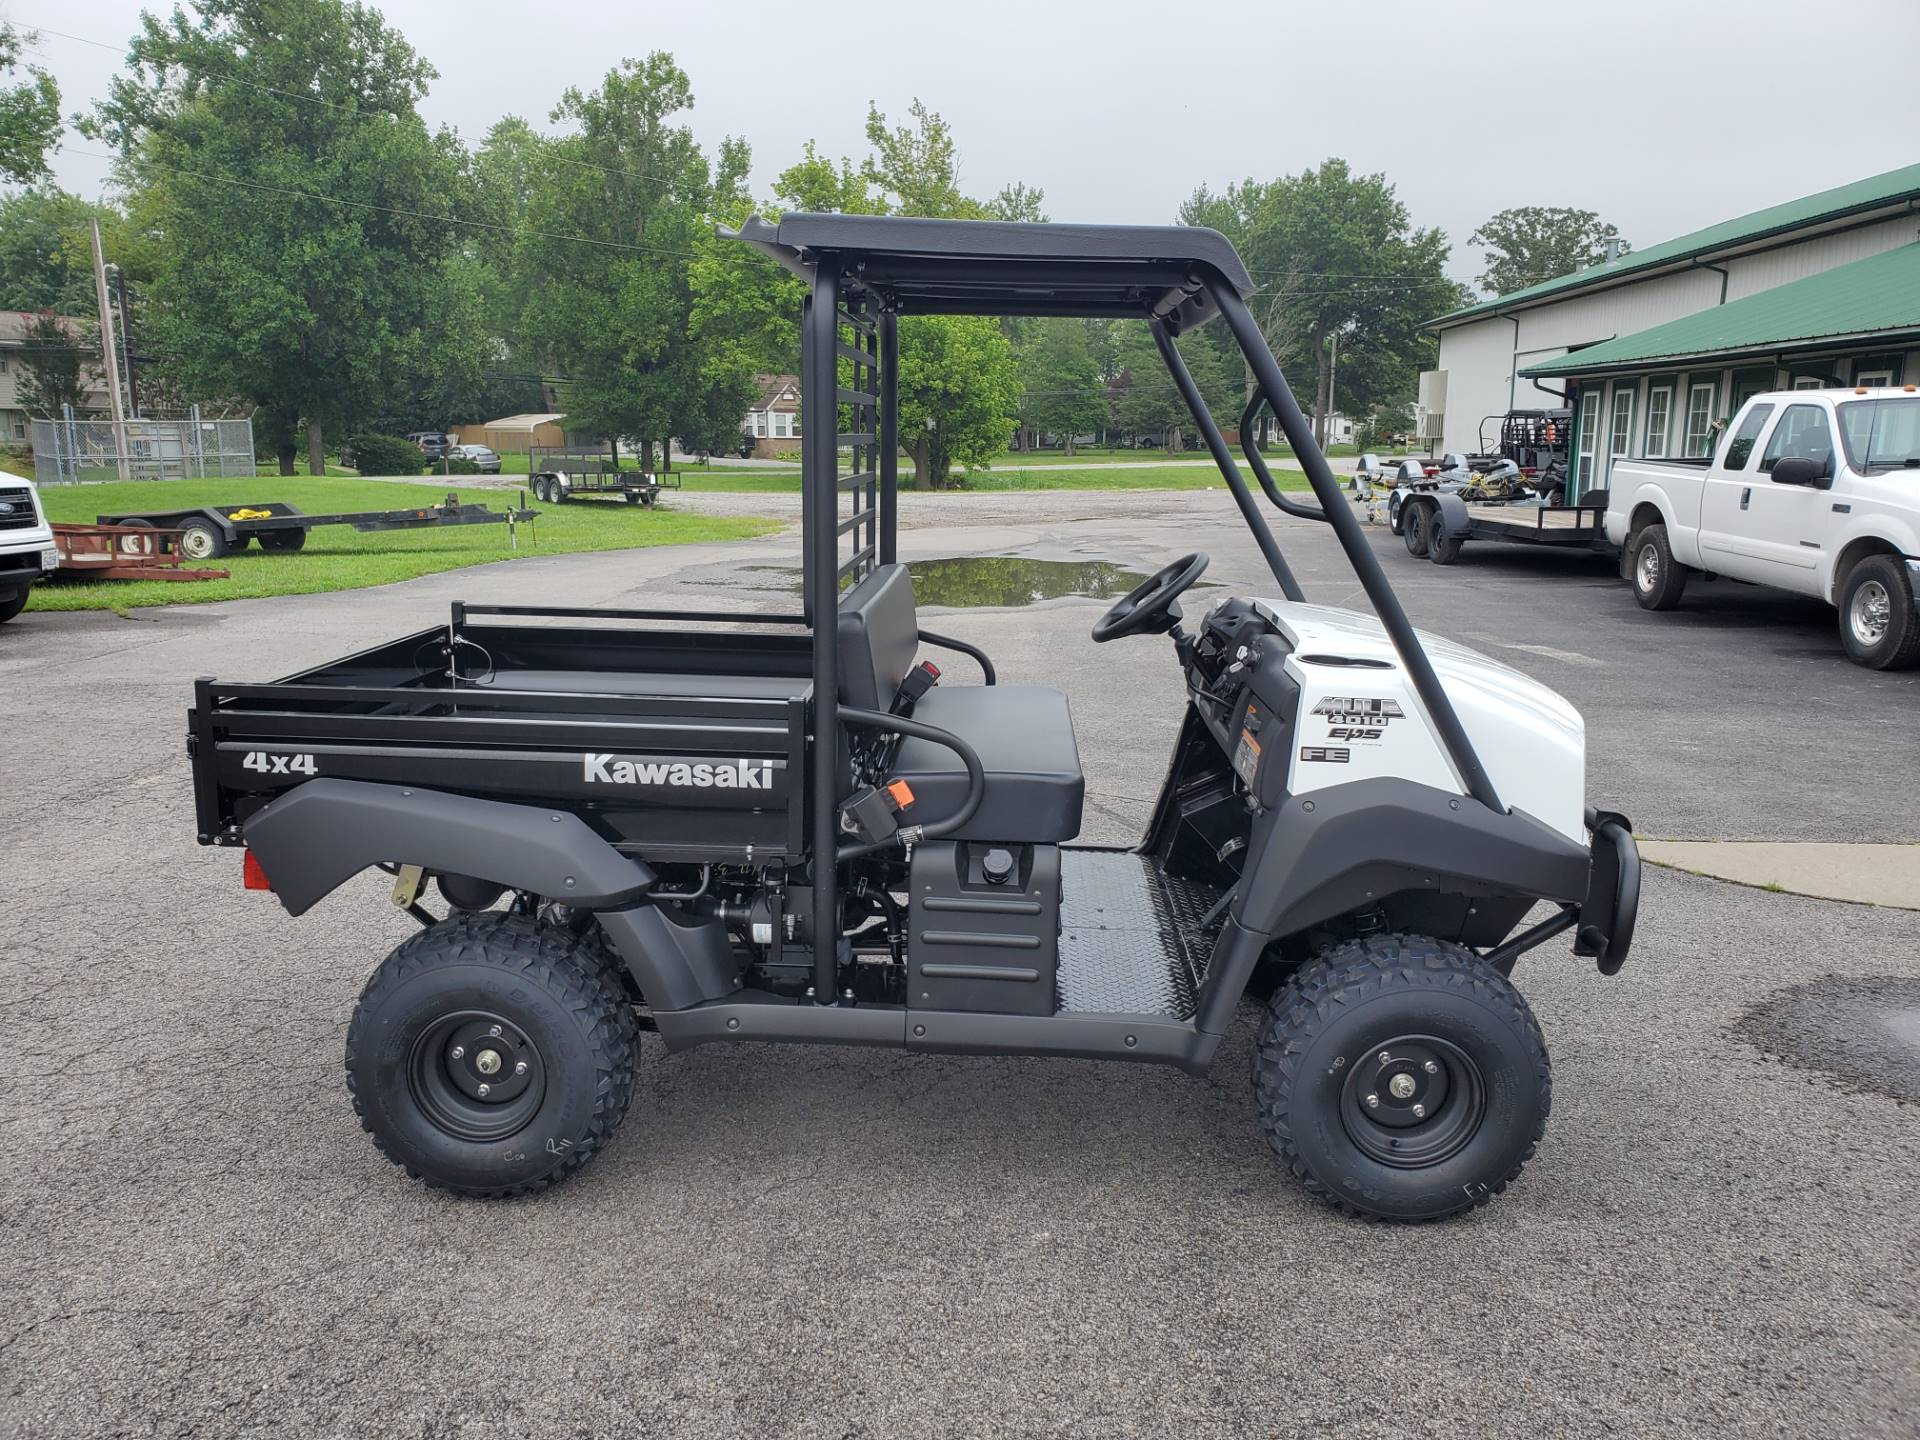 2021 Kawasaki Mule 4010 4x4 FE in Herrin, Illinois - Photo 1